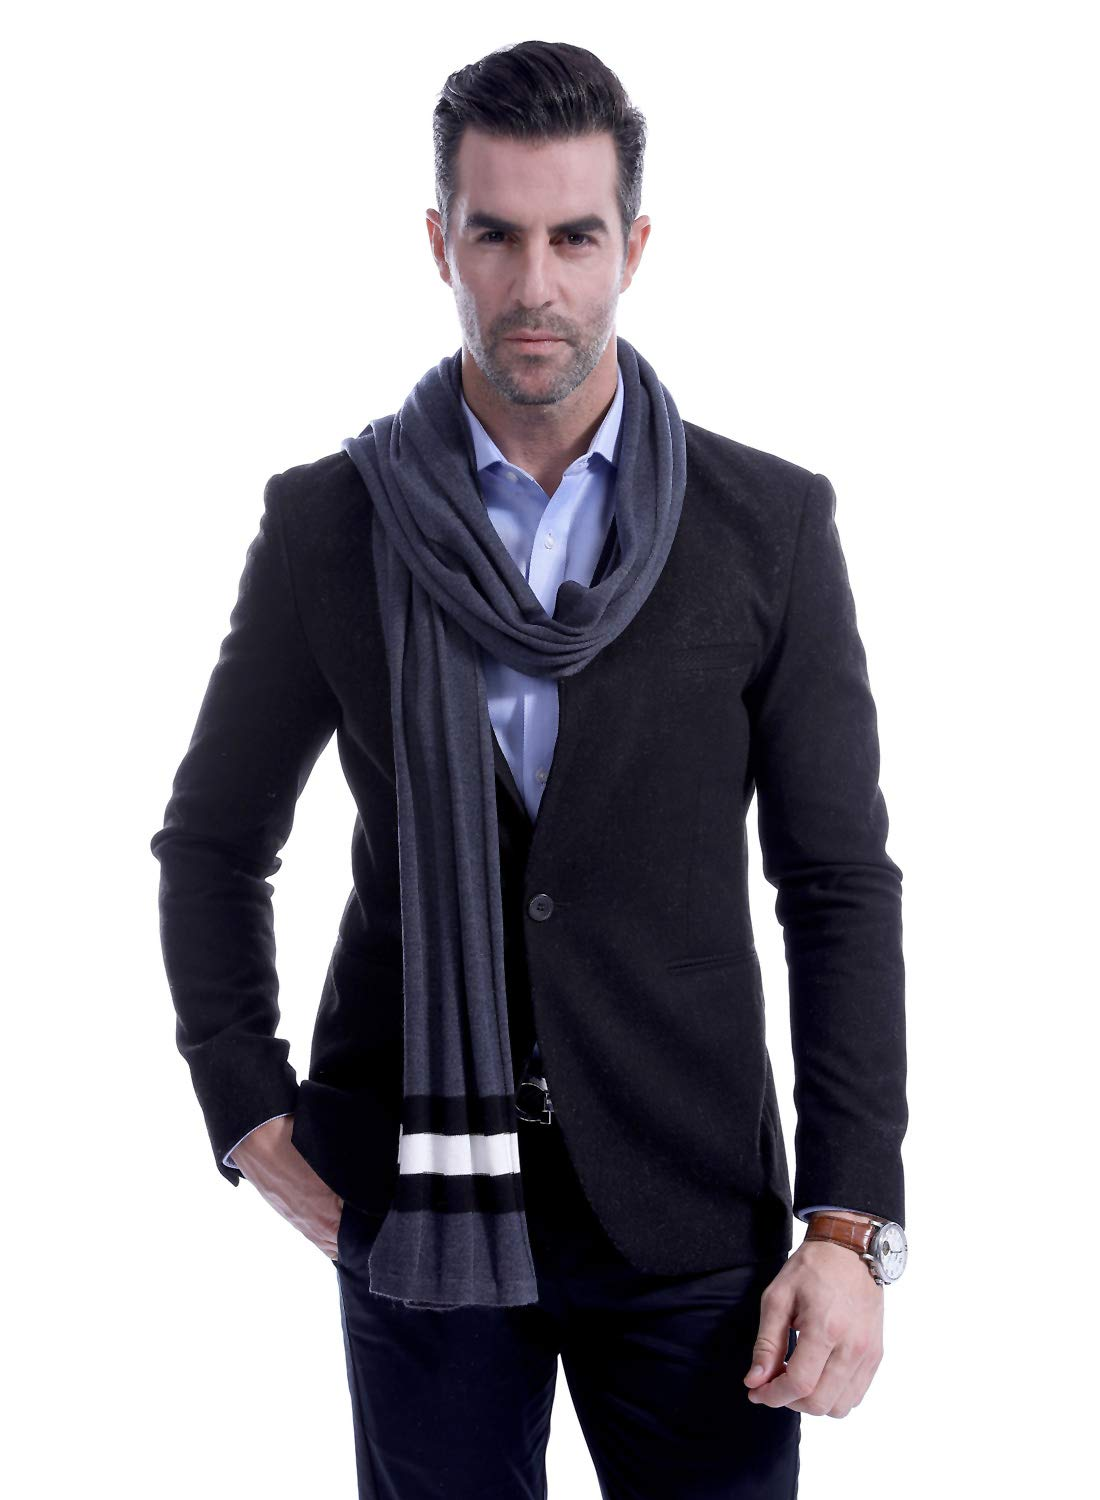 Men Plain Thermal Scarf Knitted Striped Winter Scarves One Size Leisure Business Men Warm Neckerchief Gray by Panegy (Image #3)